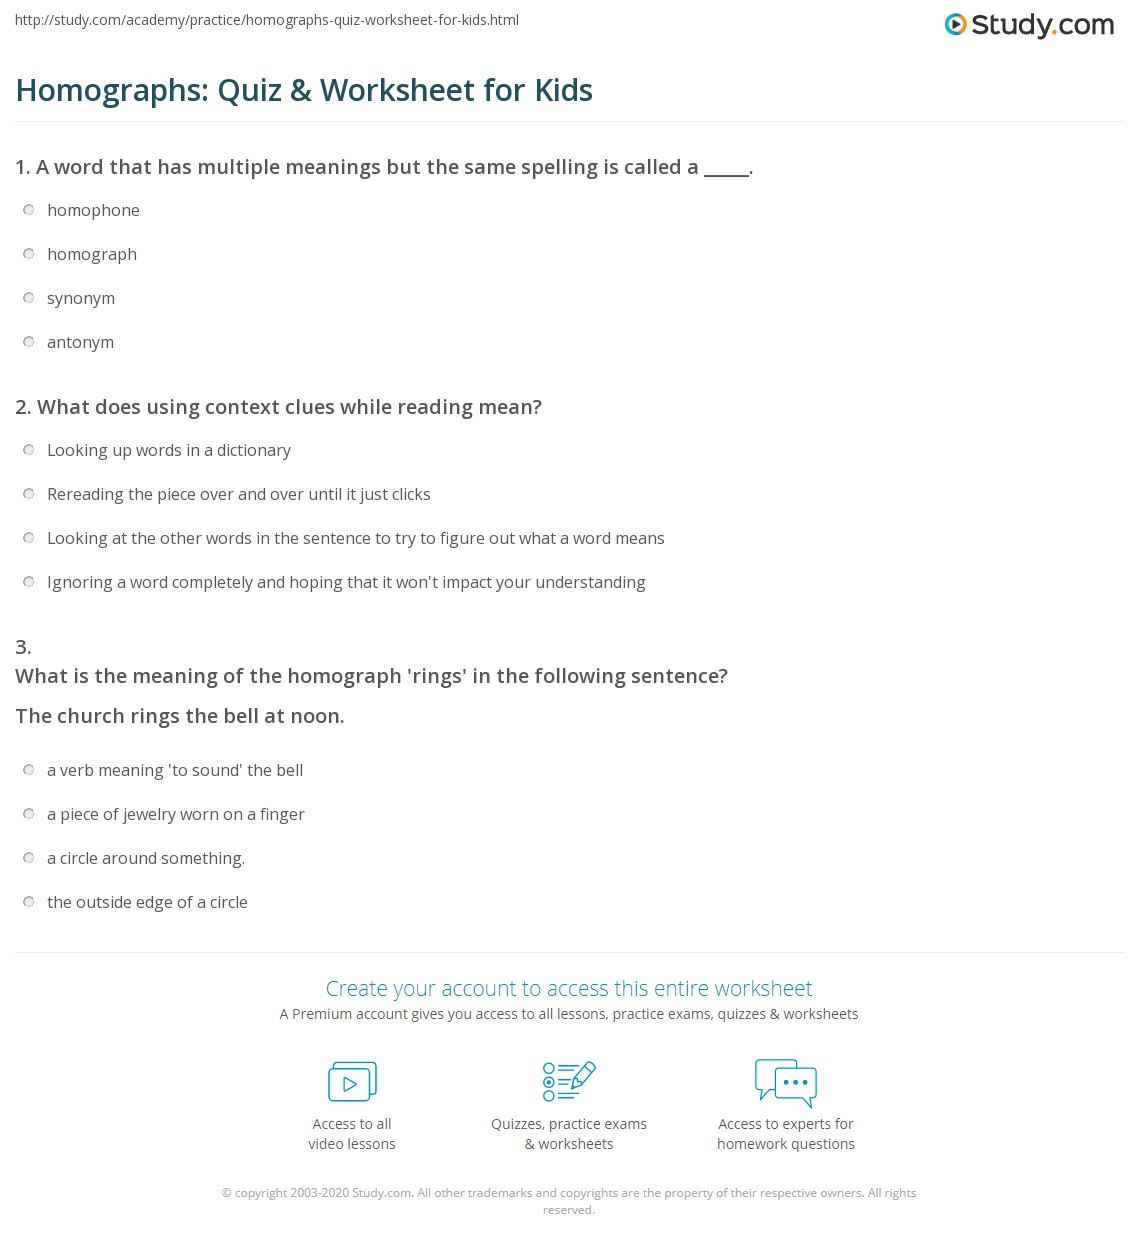 Homograph Worksheet 5th Grade Homographs Quiz & Worksheet for Kids